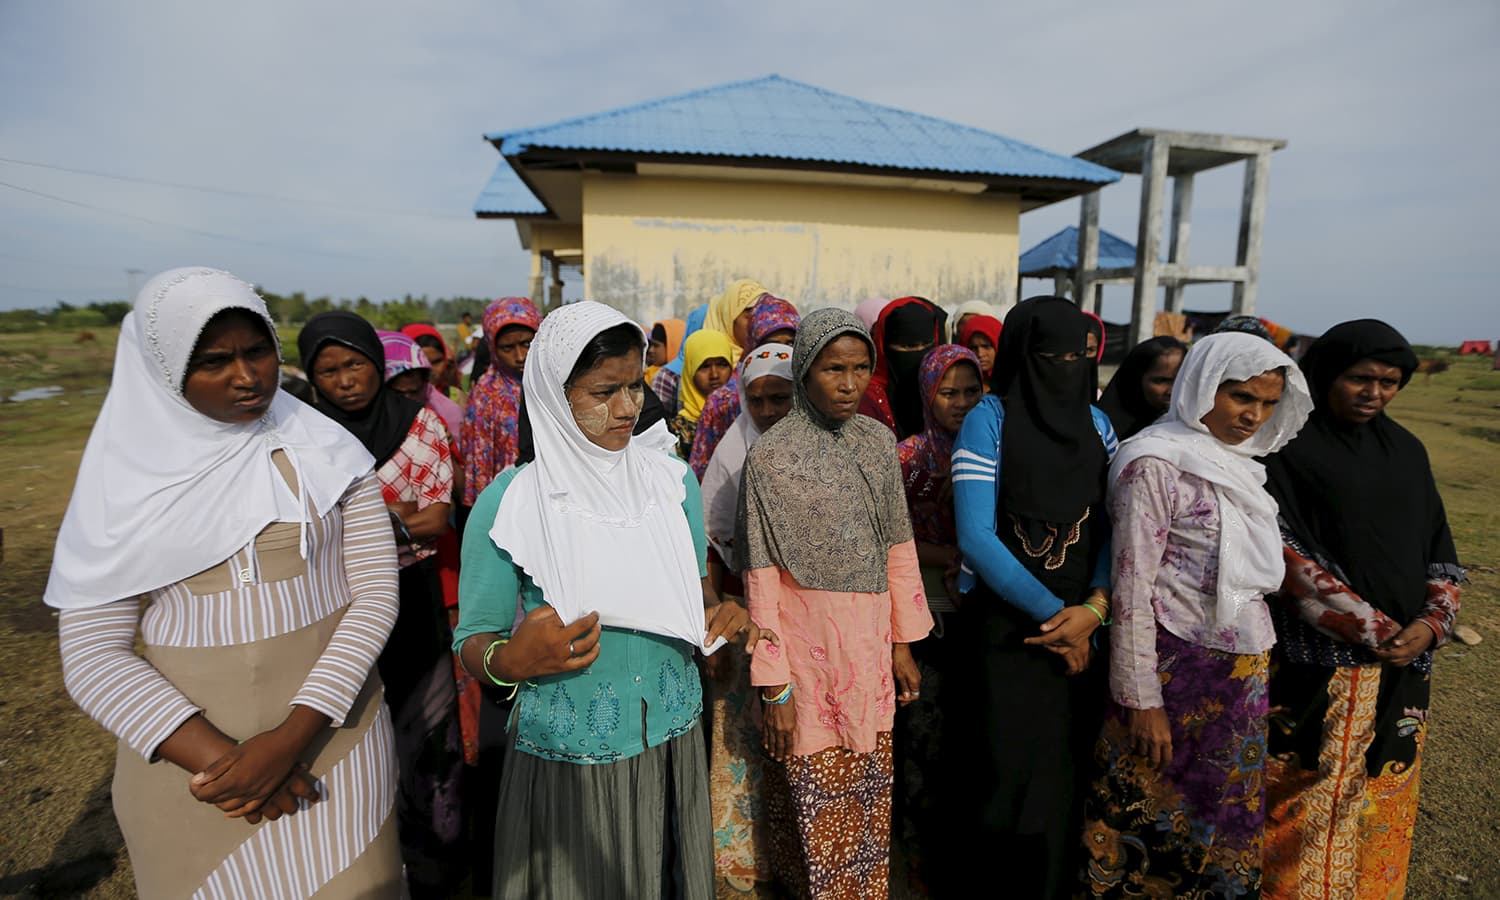 Rohingya migrants who arrived in Indonesia by boat queue for breakfast inside a temporary compound for refugees at Kuala Cangkoi village in Lhoksukon, Indonesia's Aceh.